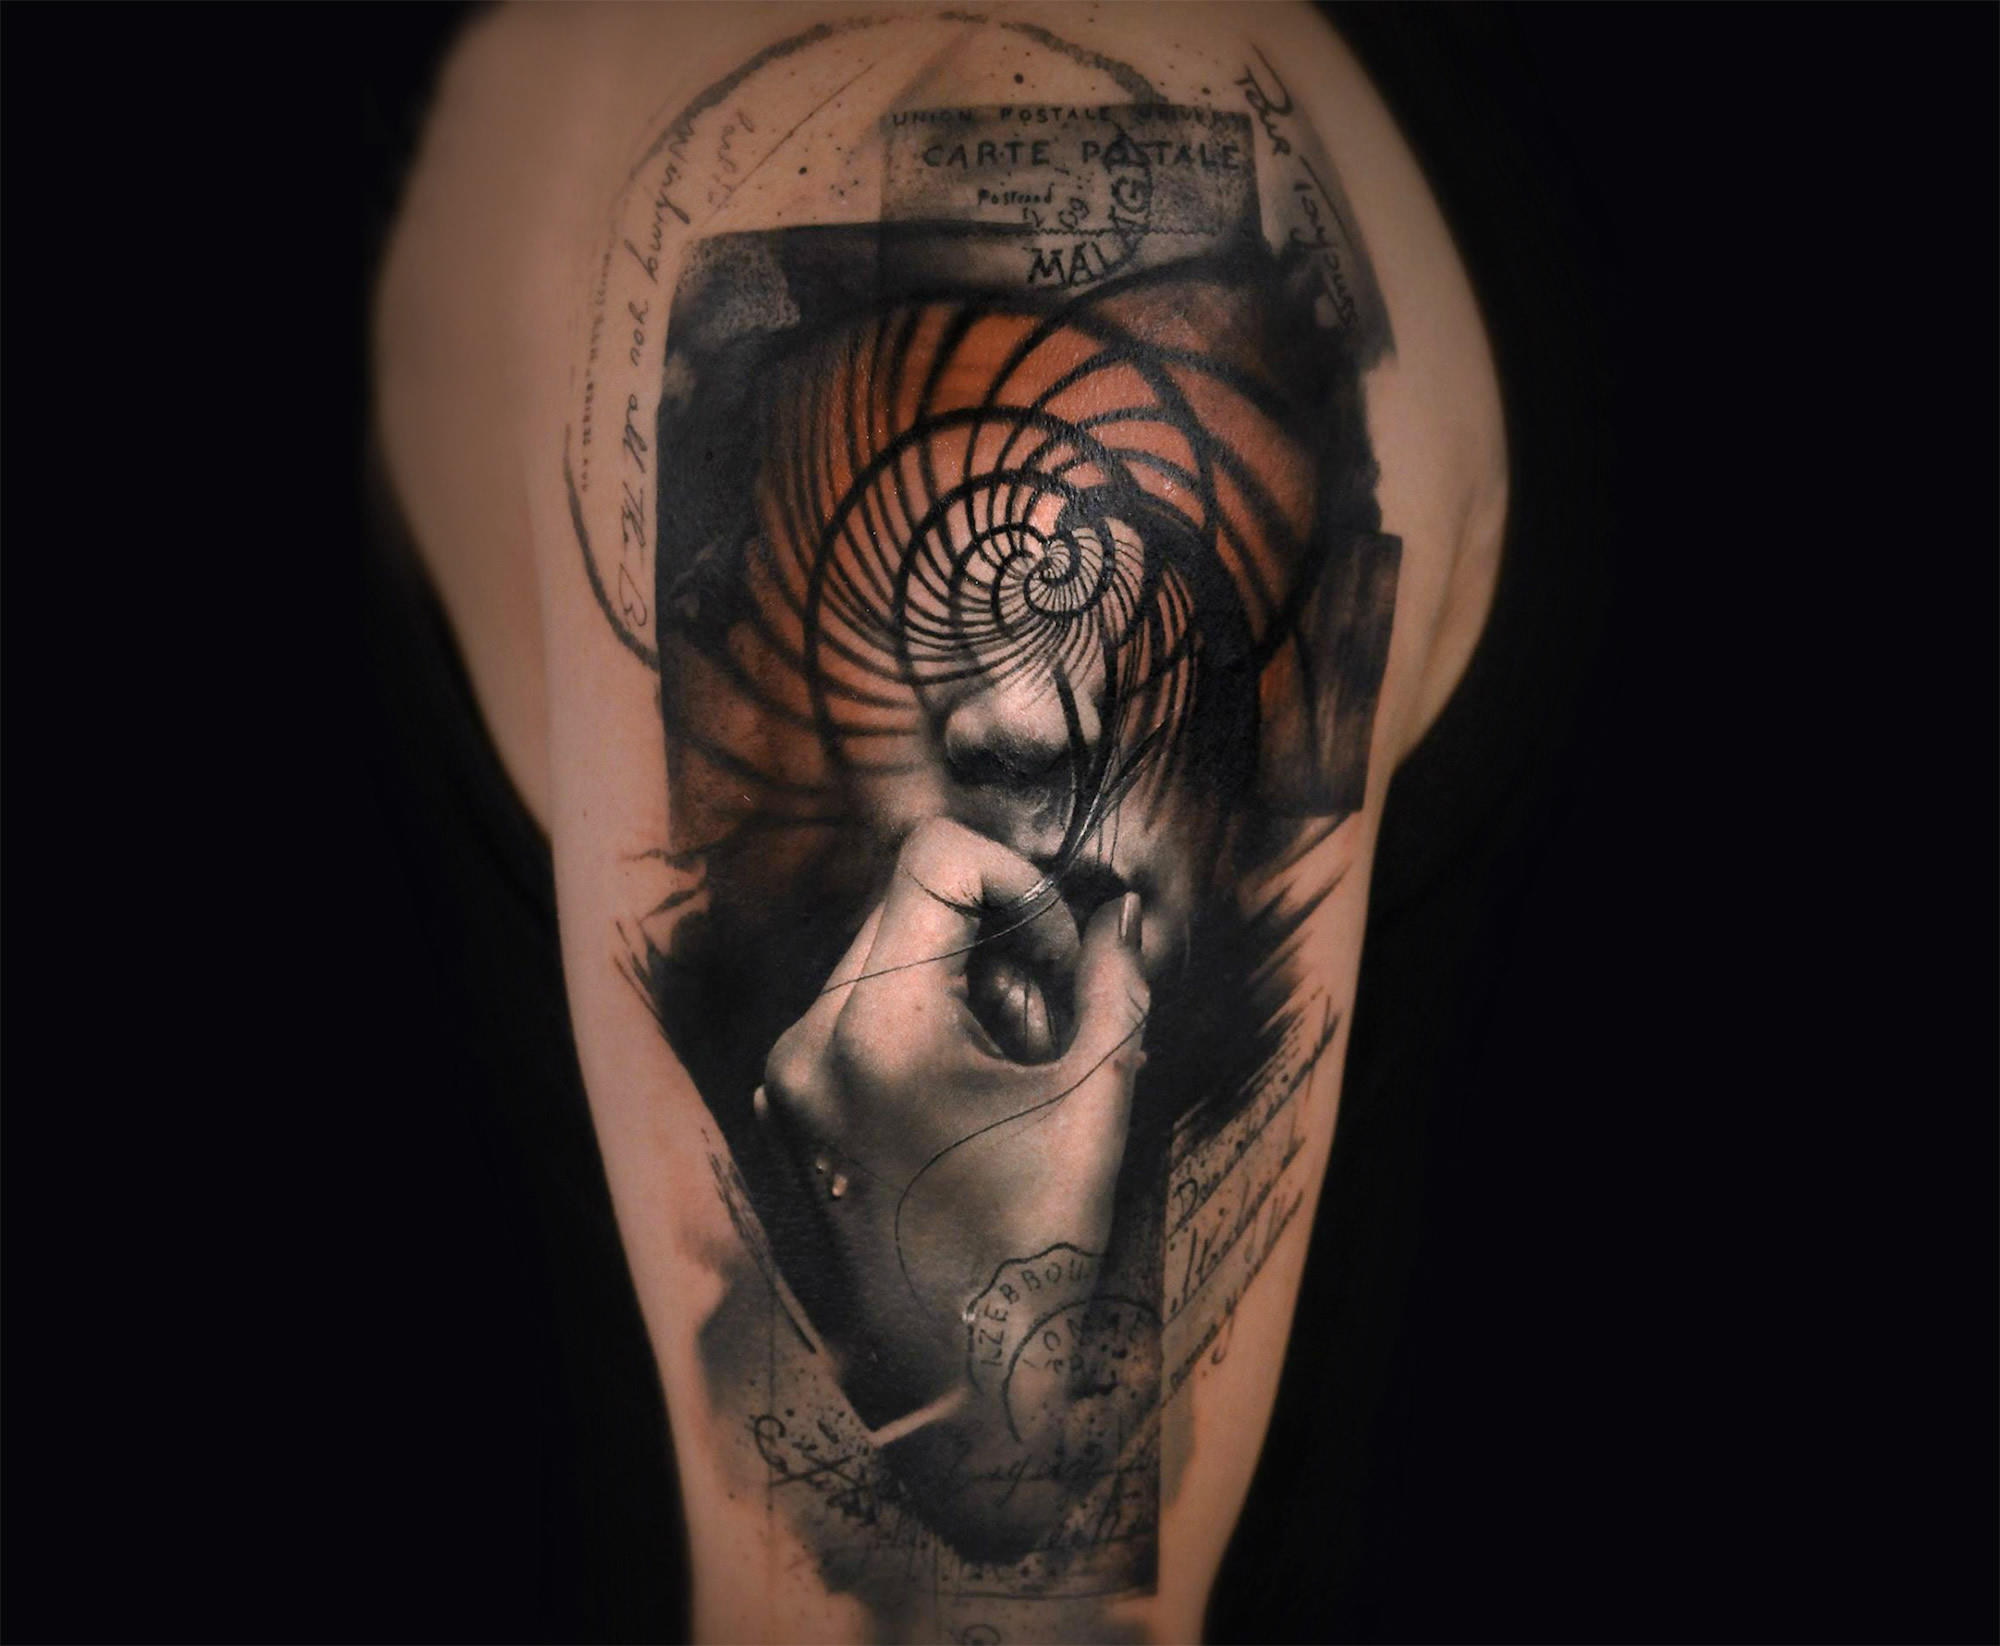 thomas carli jarlier double exposure tattoo